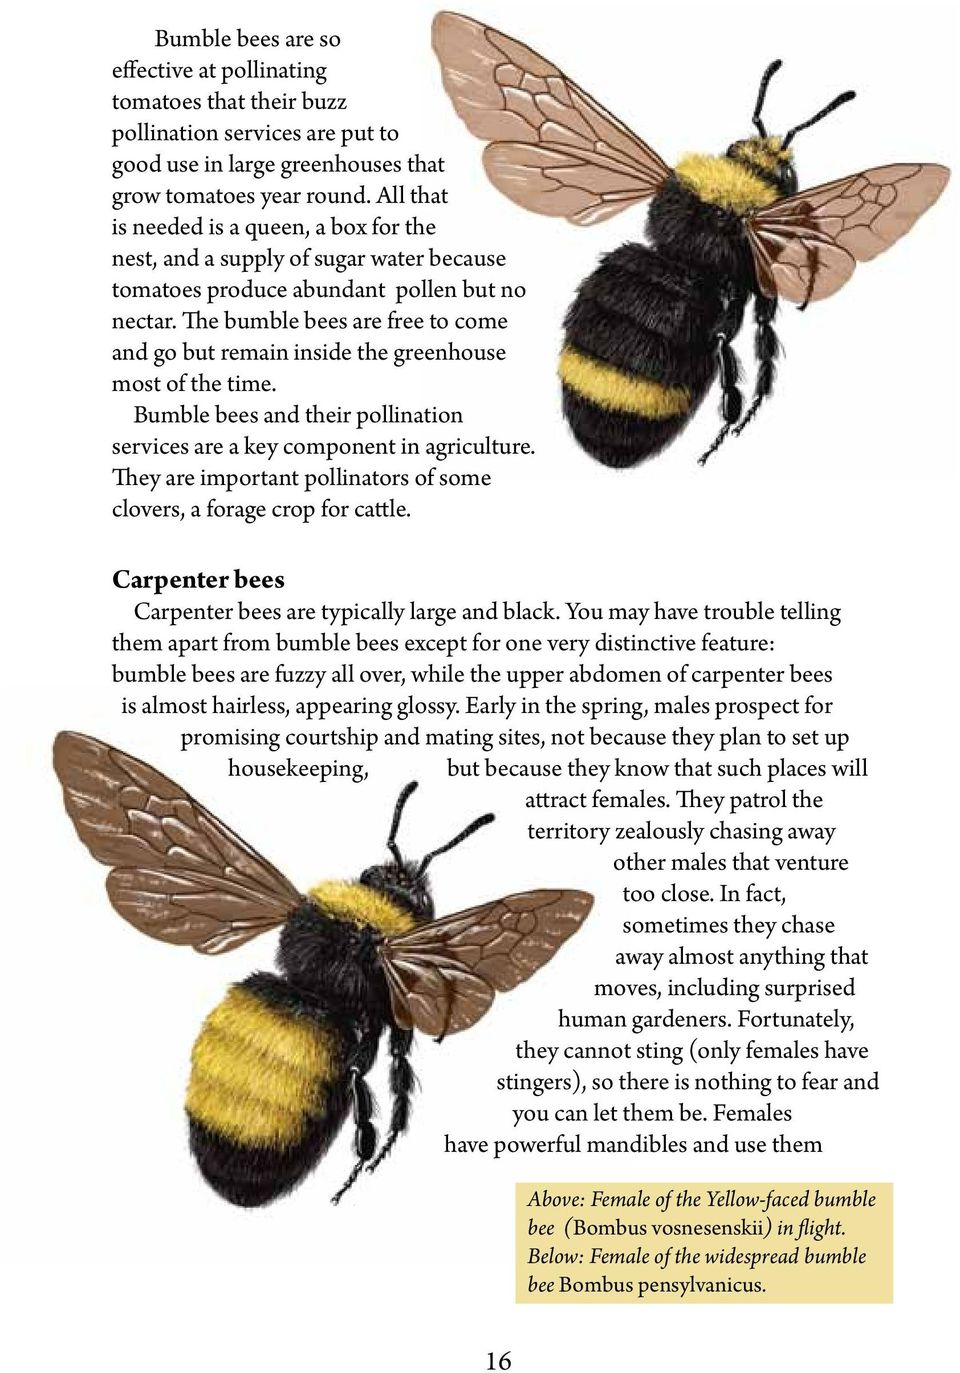 The bumble bees are free to come and go but remain inside the greenhouse most of the time. Bumble bees and their pollination services are a key component in agriculture.